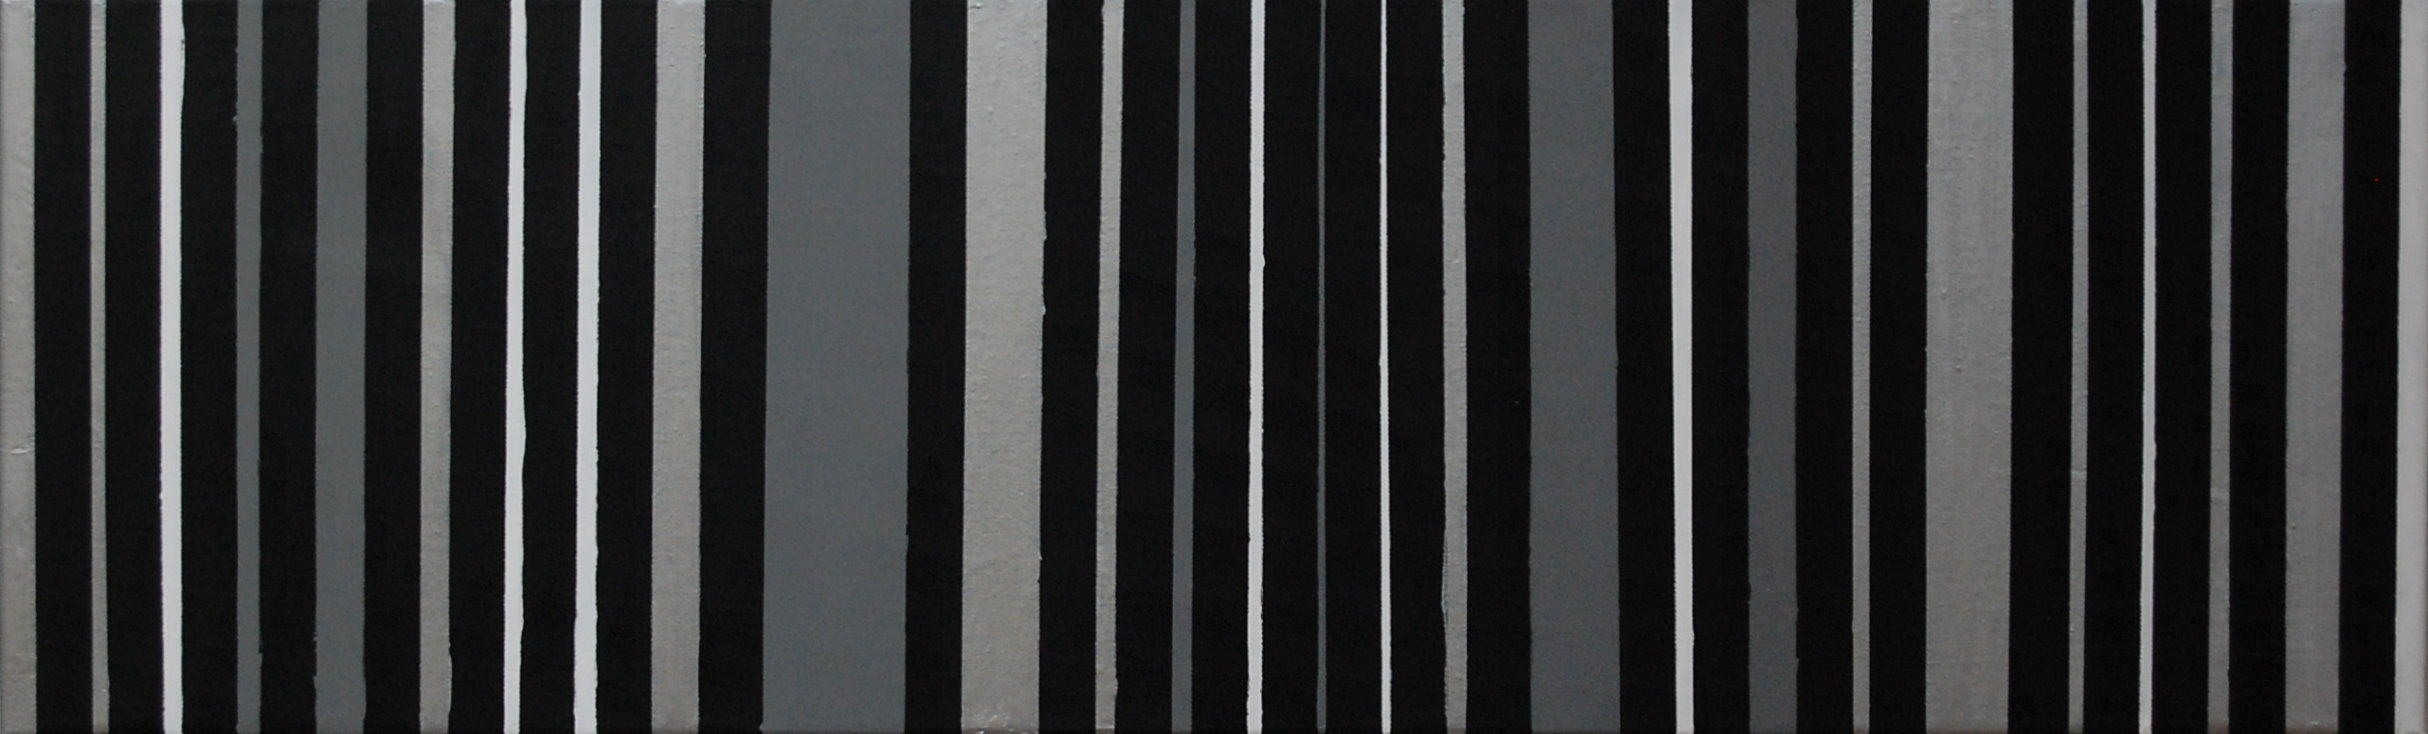 """Black, Silver, Gray, White"", Mixed Media on Canvas, 40""x12"", SOLD"